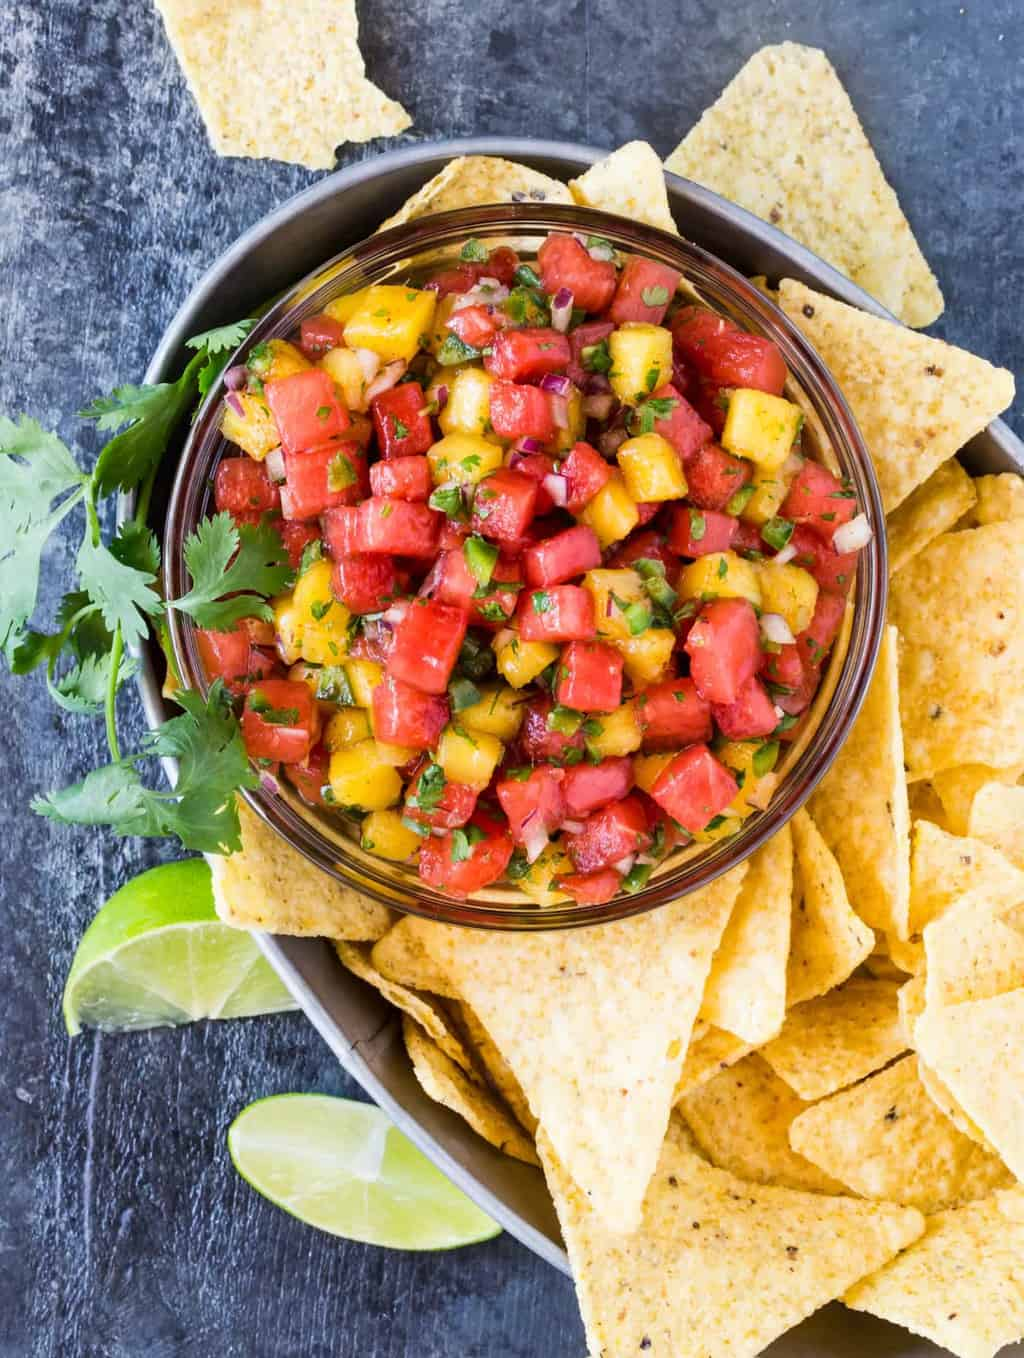 Bowl of watermelon salsa with tortilla chips and lime wedges.